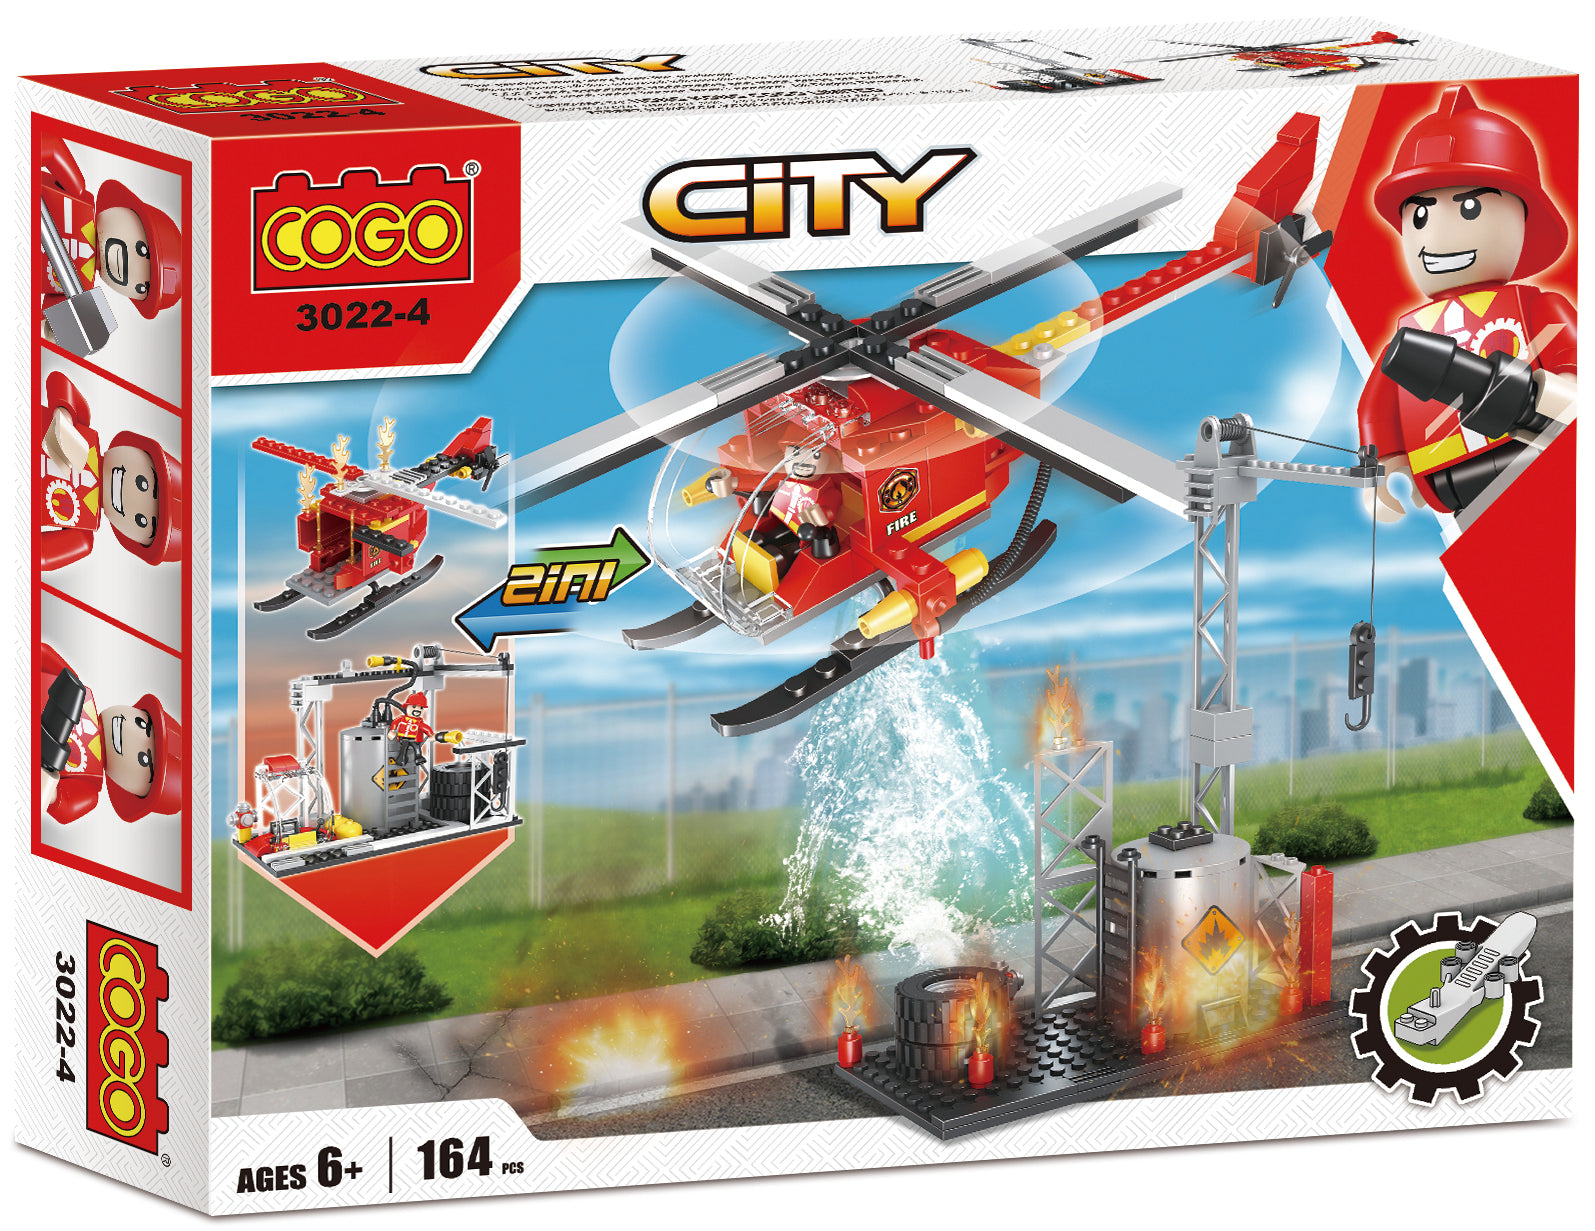 COGO fire series building block set-5